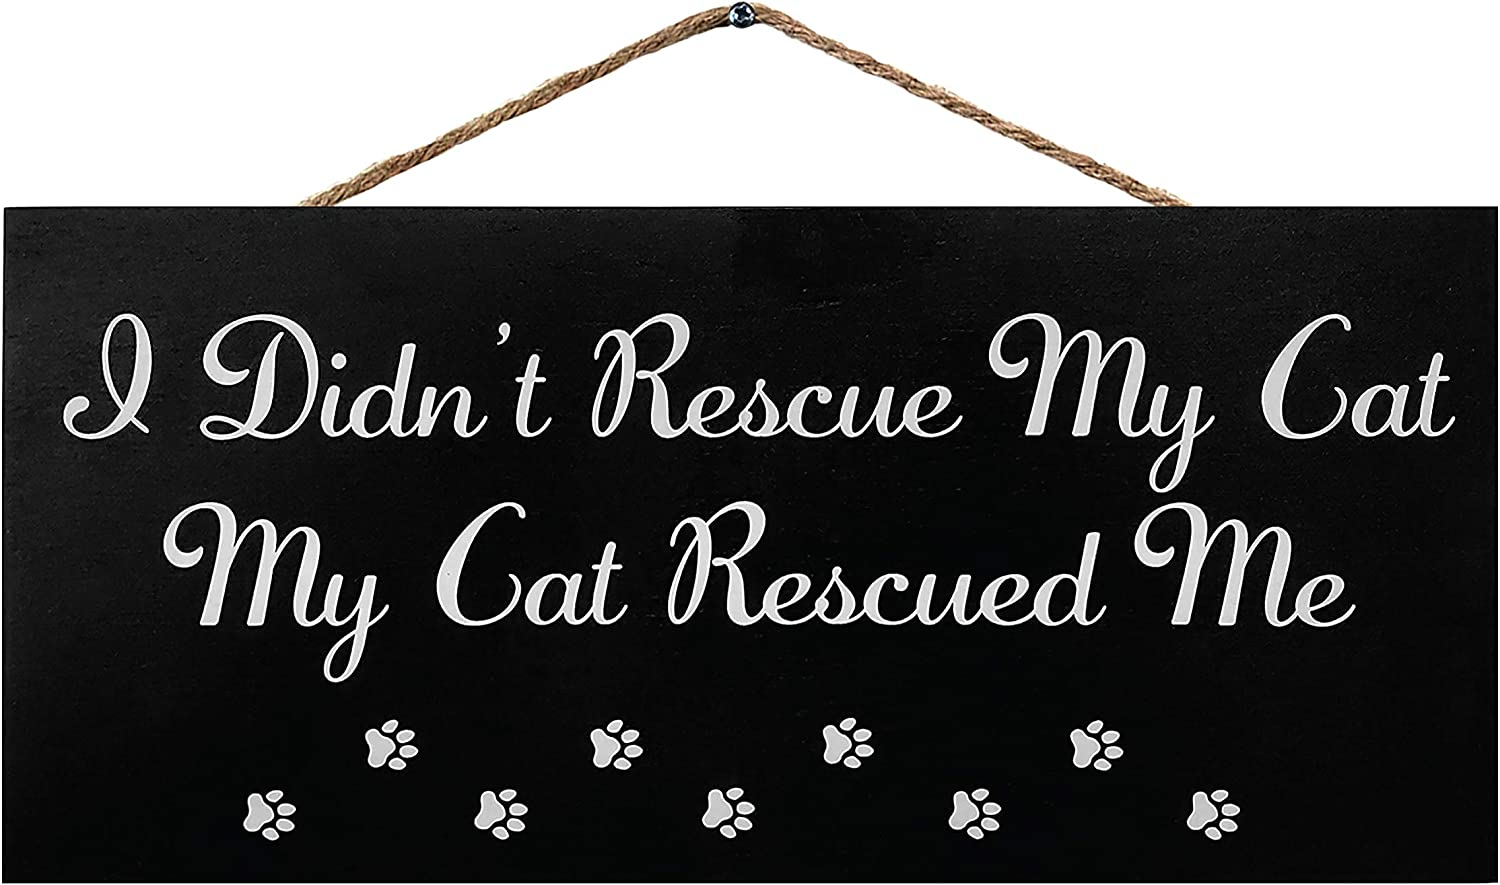 JennyGems I Didn't Rescue My Cat - My Cat Rescued Me | Hanging Funny Cat Signs | Home Decor Accent